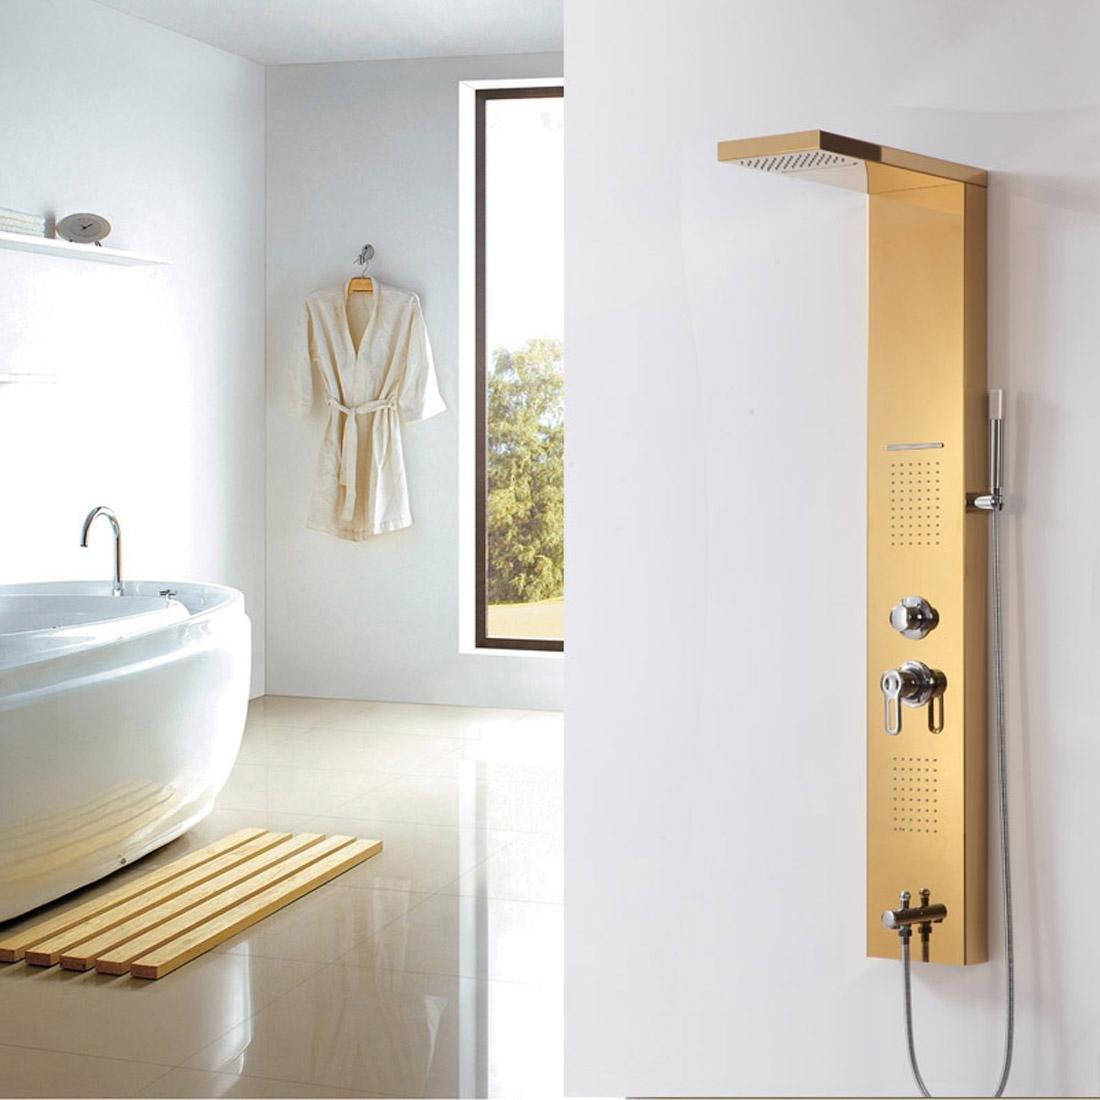 HYY@ Bathroom Rainfall Stainless Steel Shower Panel Rain Massage Faucet with Jets & Hand Shower Wall Mount Golden Finish hot sale 2017